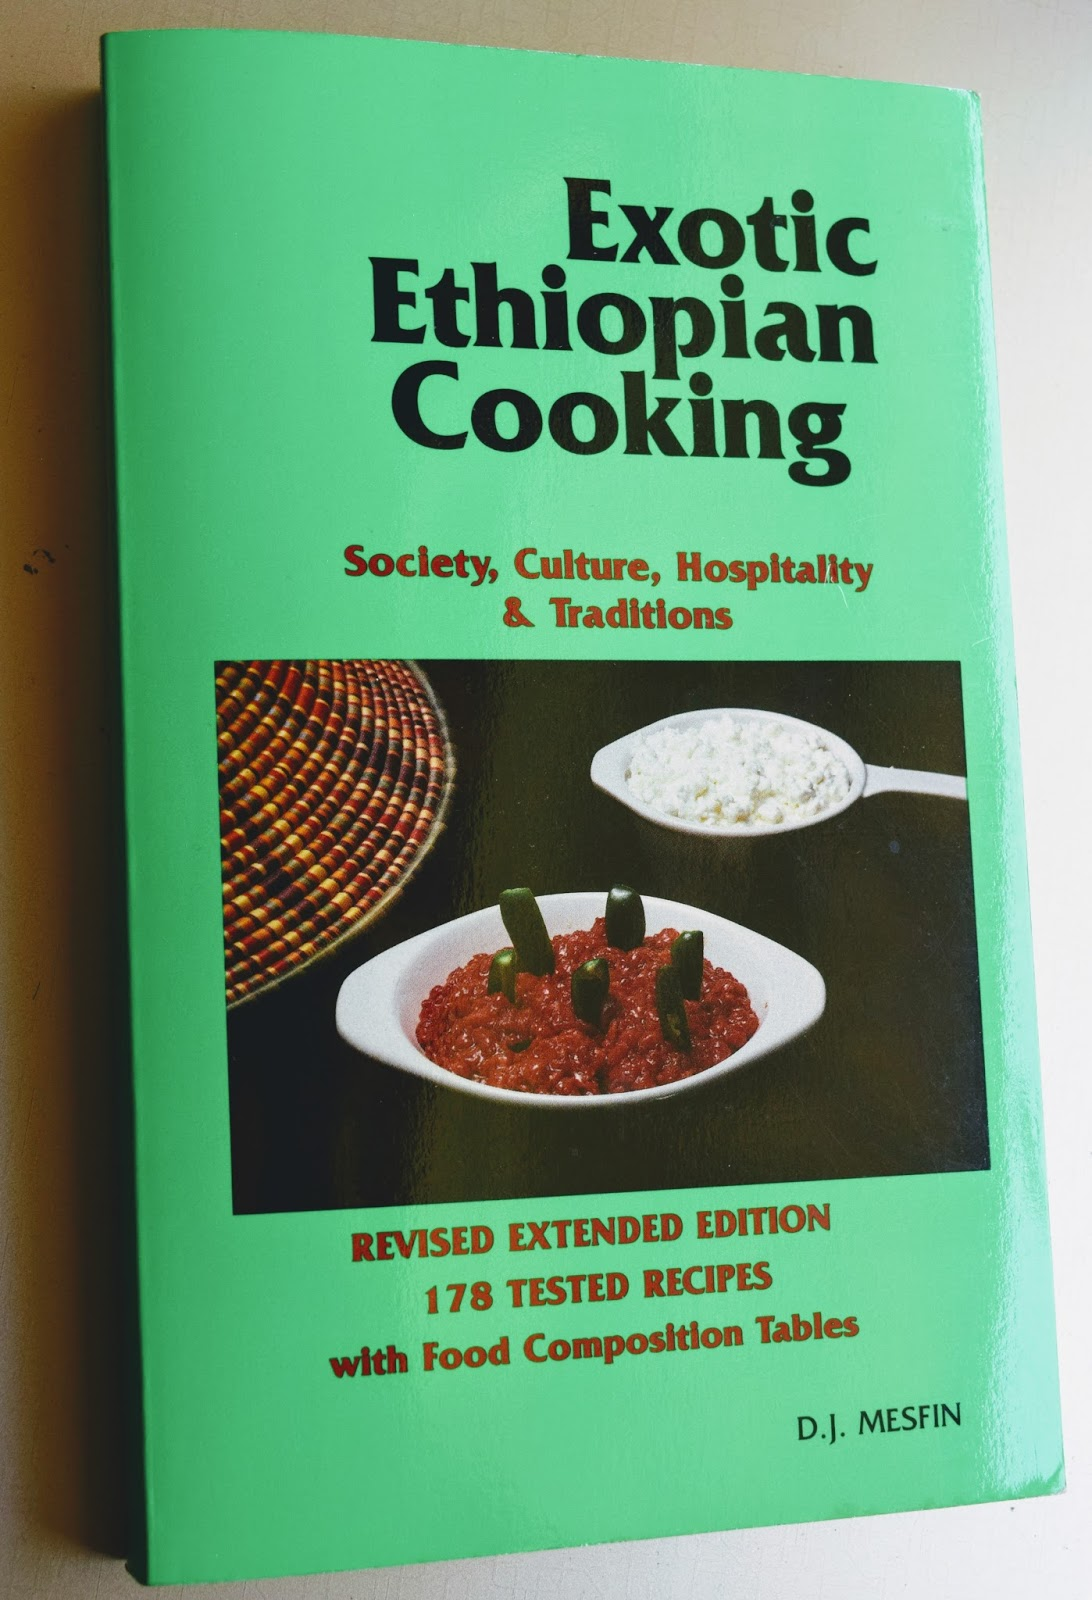 Delectable victuals ethiopian spiced stews with injera having made ethiopian foods for nearly a dozen years now my go to reference has been exotic ethiopian cooking by dj mesfin forumfinder Image collections